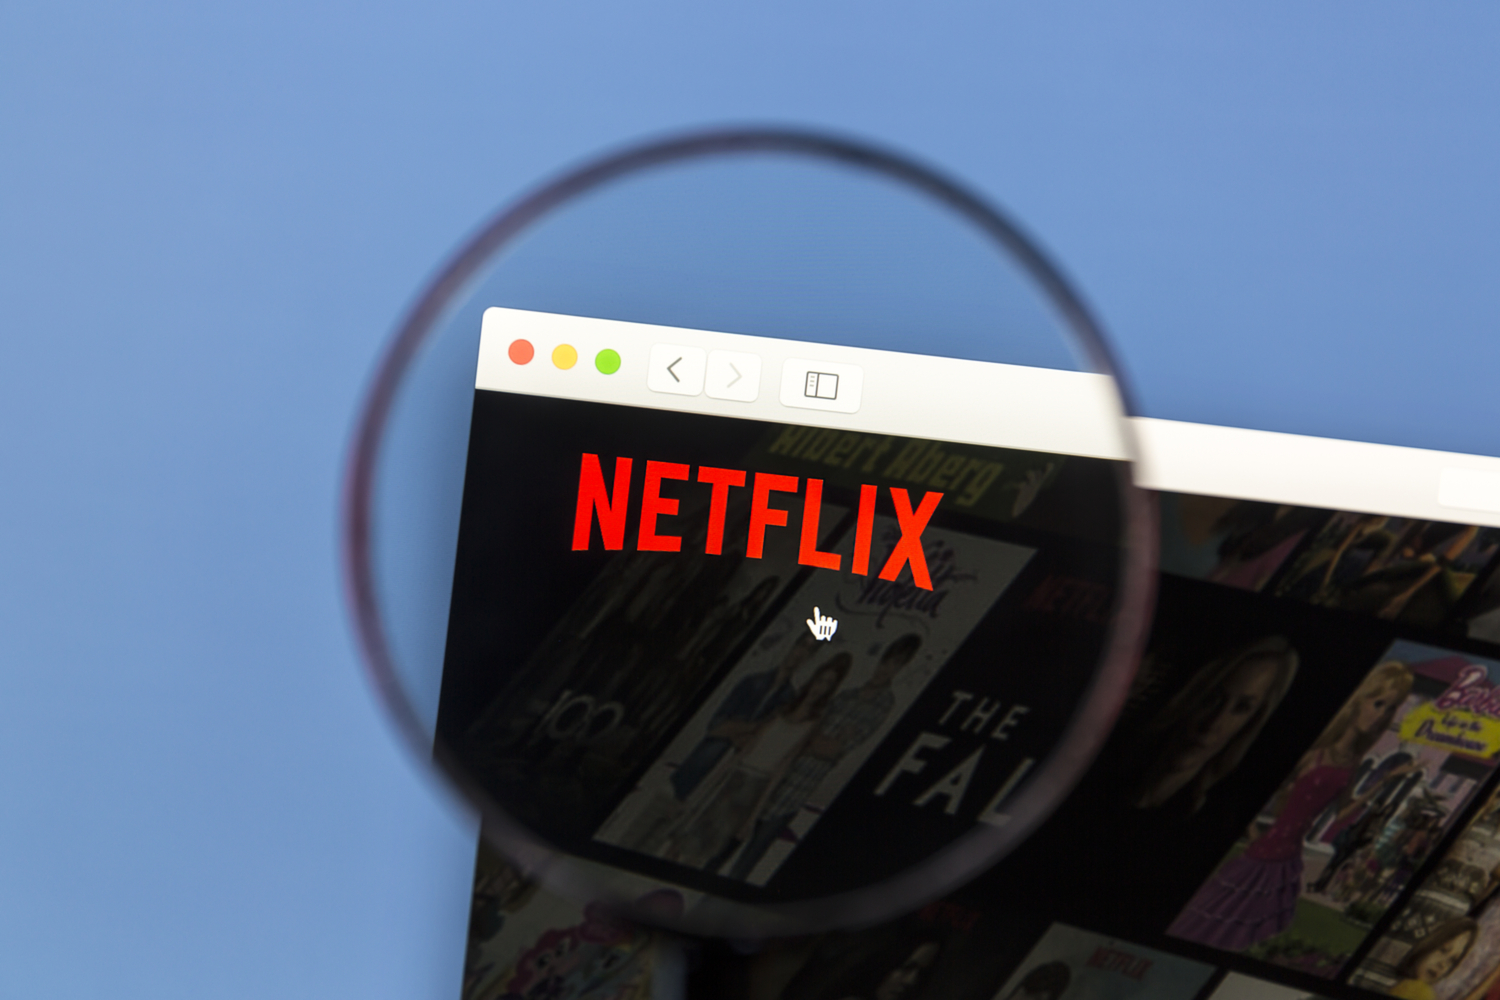 Does Netflix Work With WiFi?